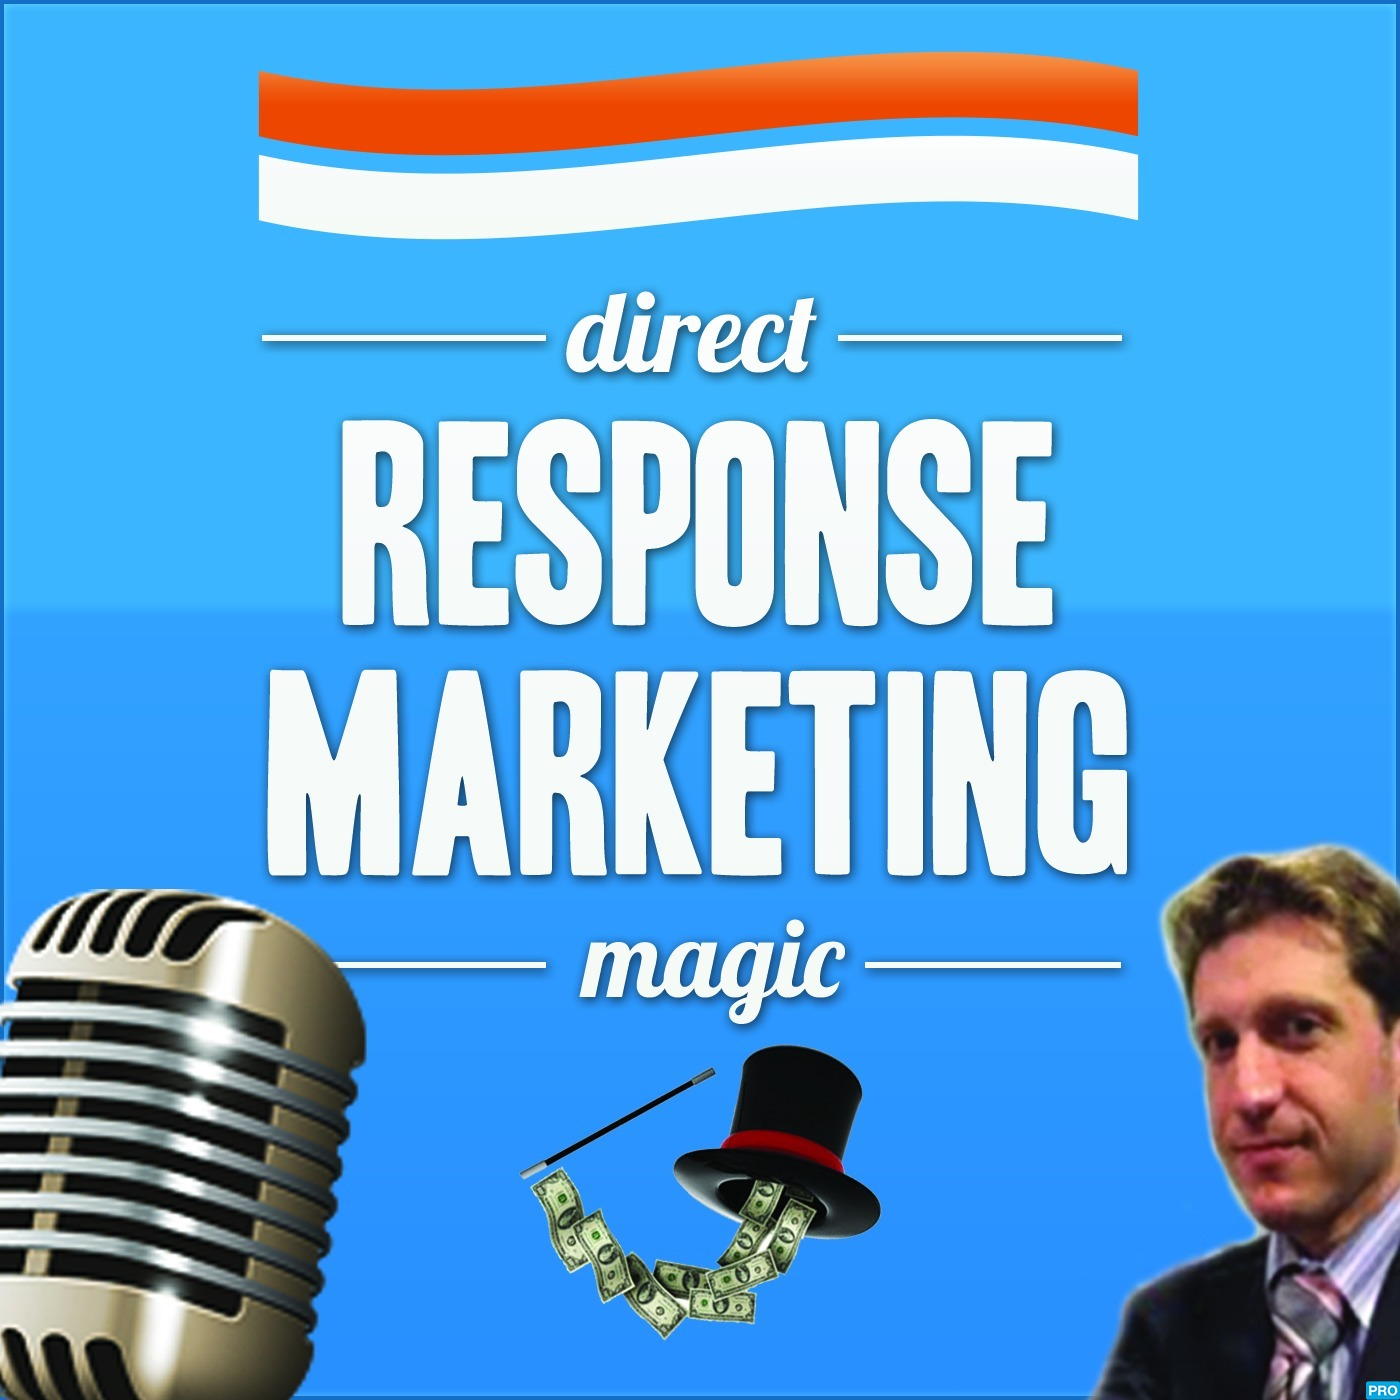 Direct Response Marketing Magic